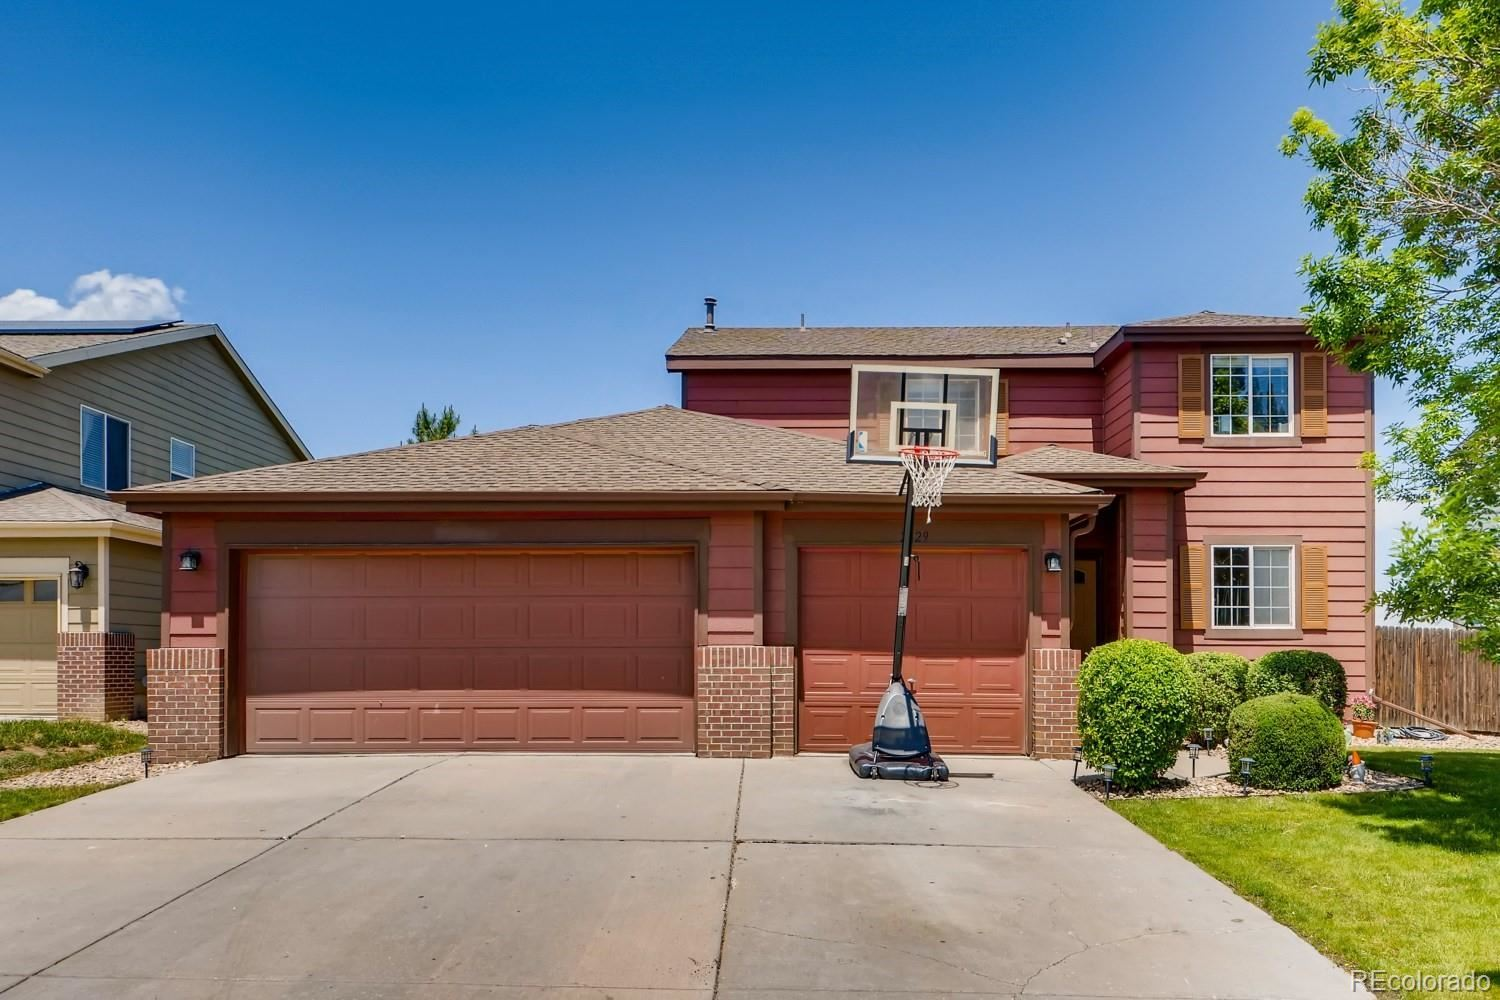 2829 E 107th Court, Northglenn, CO 80233 - #: 4784860